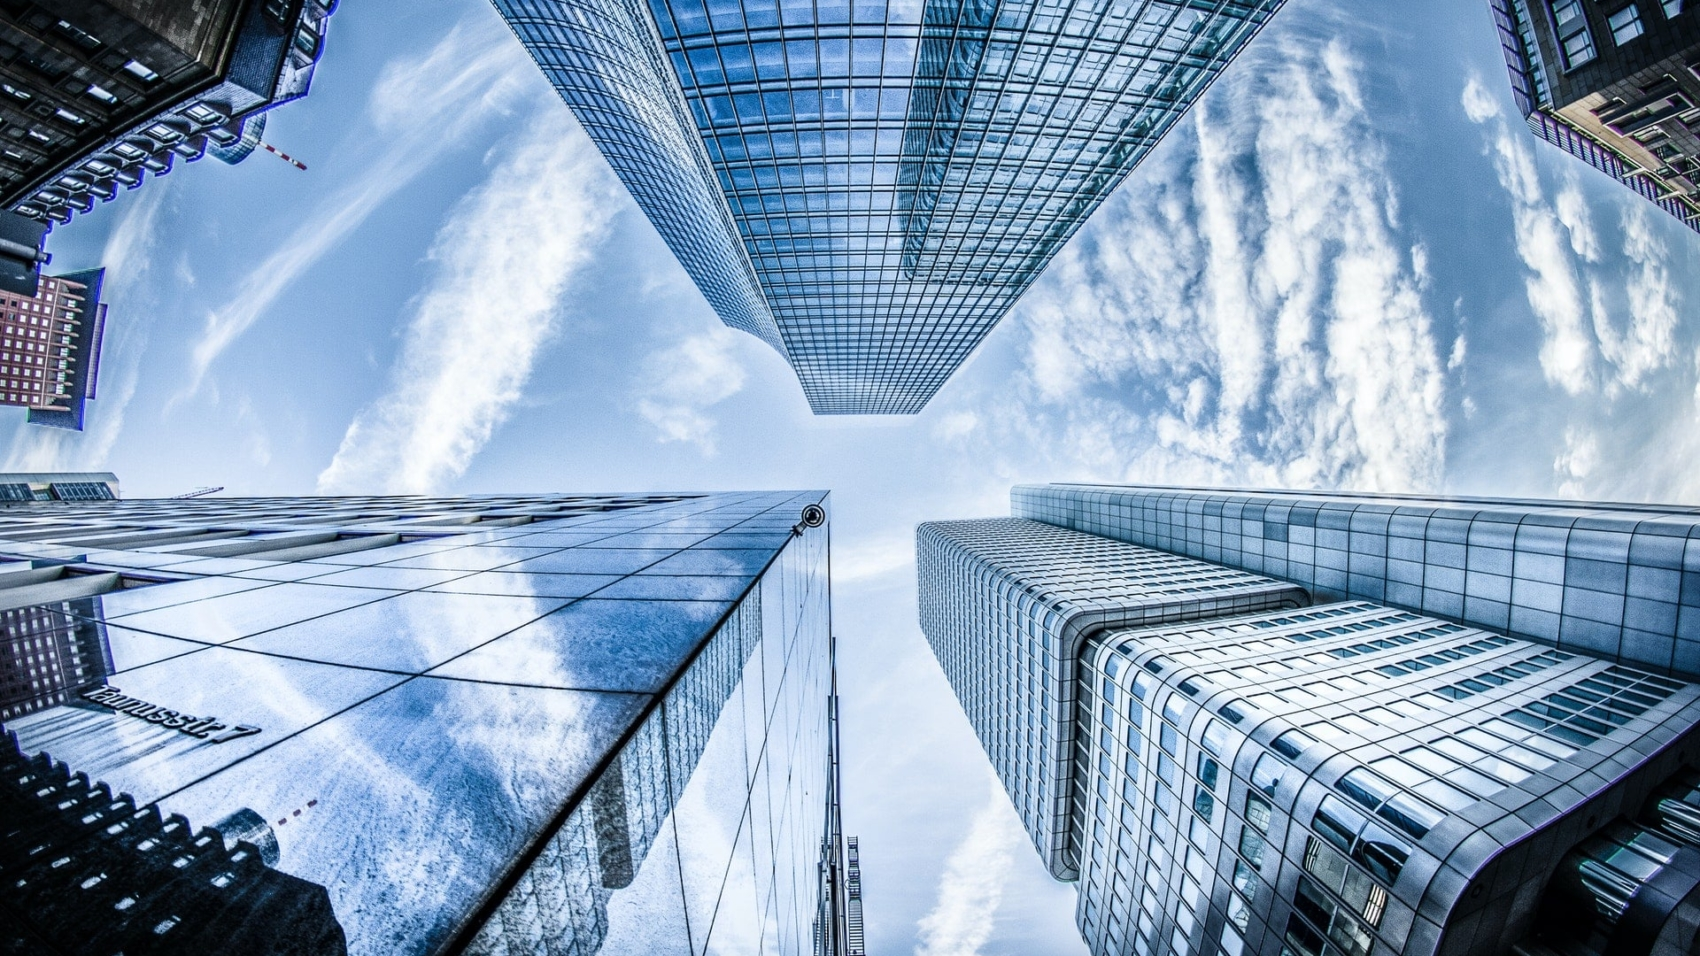 low-angle-photo-of-four-high-rise-curtain-wall-buildings-830891-min